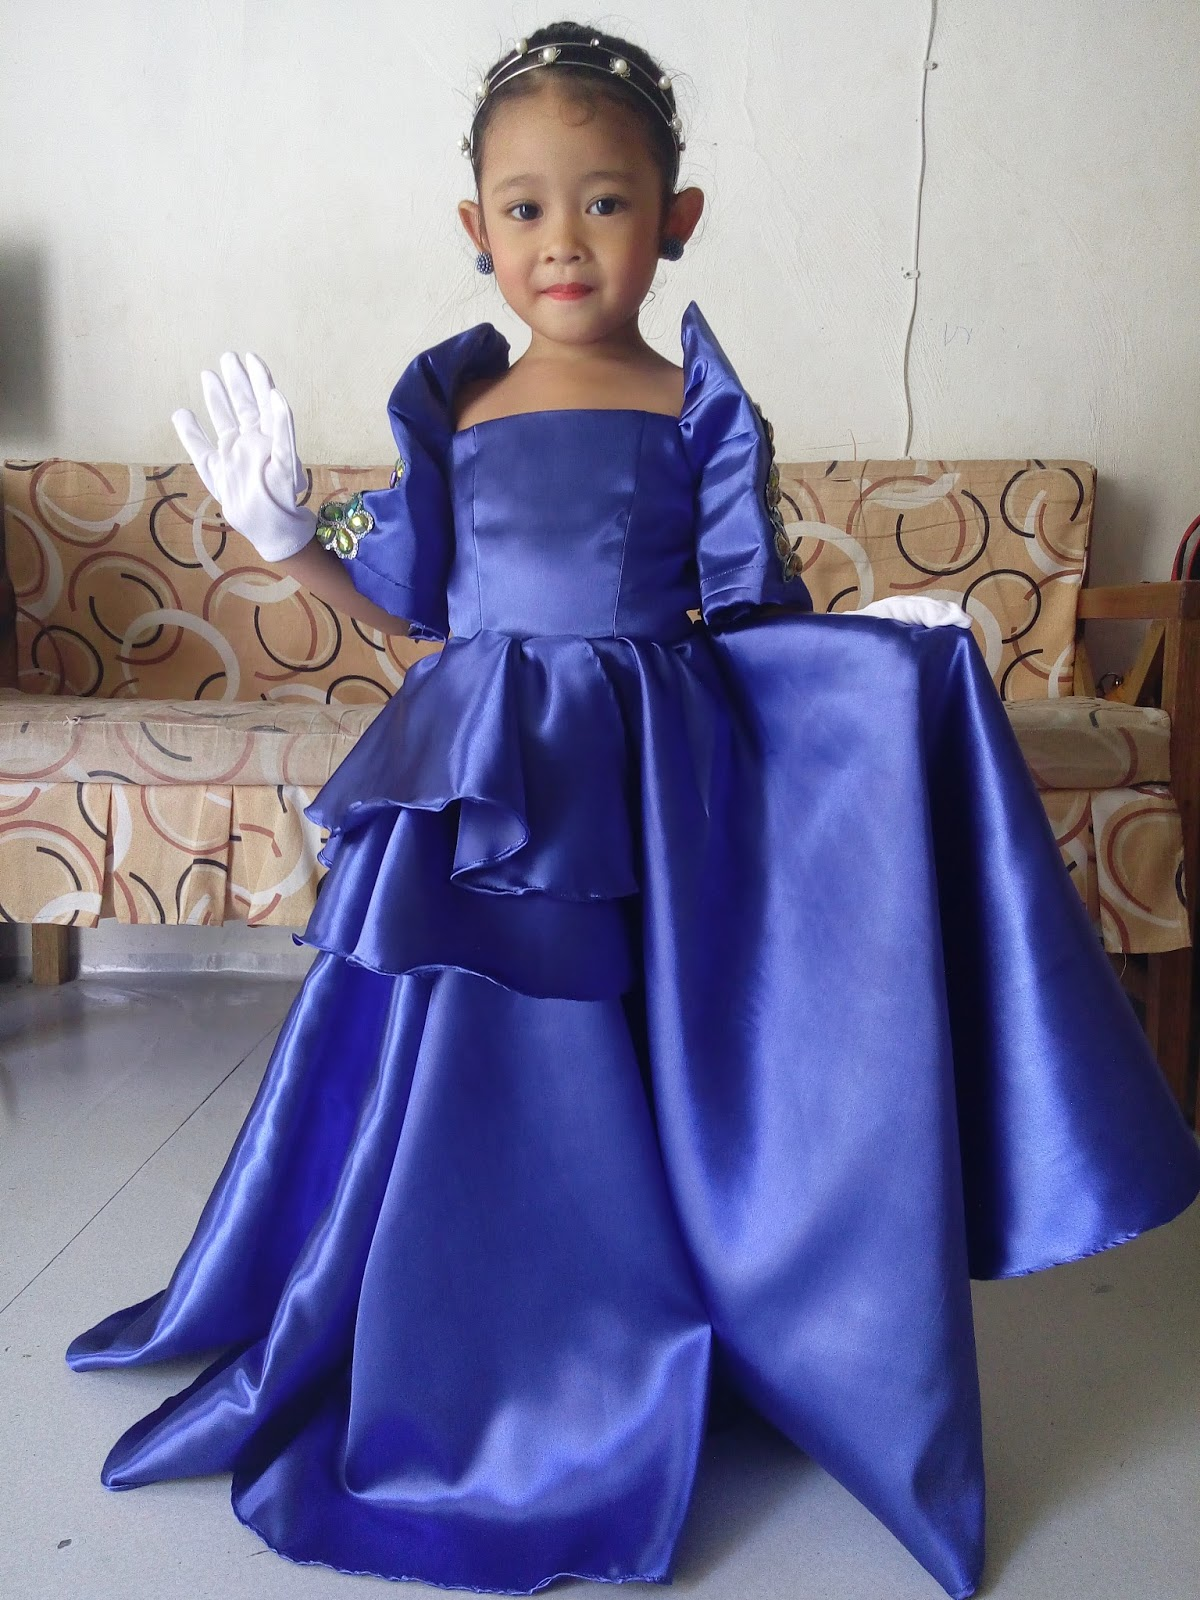 09276a1334df So As A Normal Mom Who Wants Best For Kids I Ordered My Dressmaker To Make  This Gown For Her. Best In Filipiniana Costume ... Sc 1 St Momu0027s Reverie